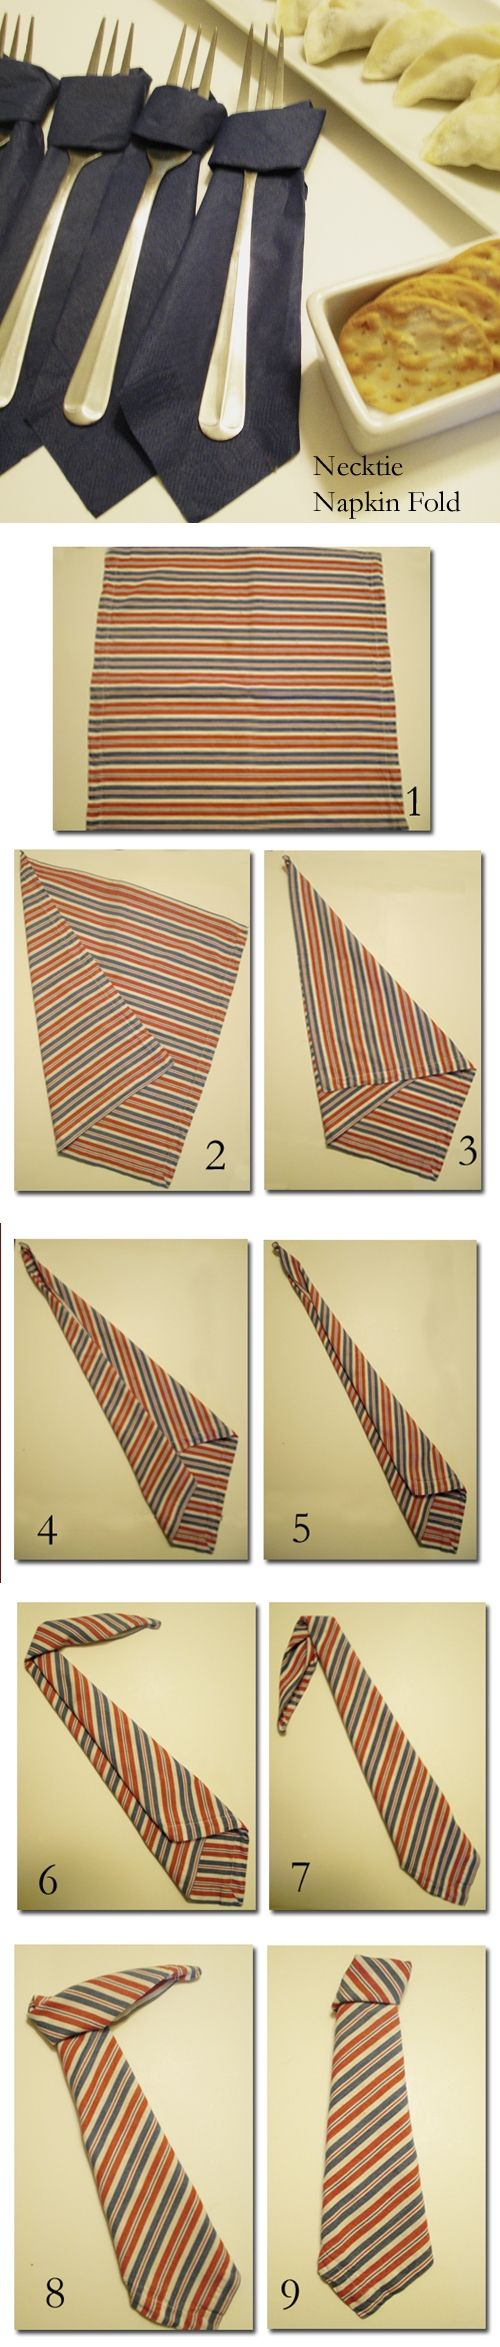 How to fold napkin in neck tie shape step by step DIY tutorial instructions (How To Instructions #foldingnapkins